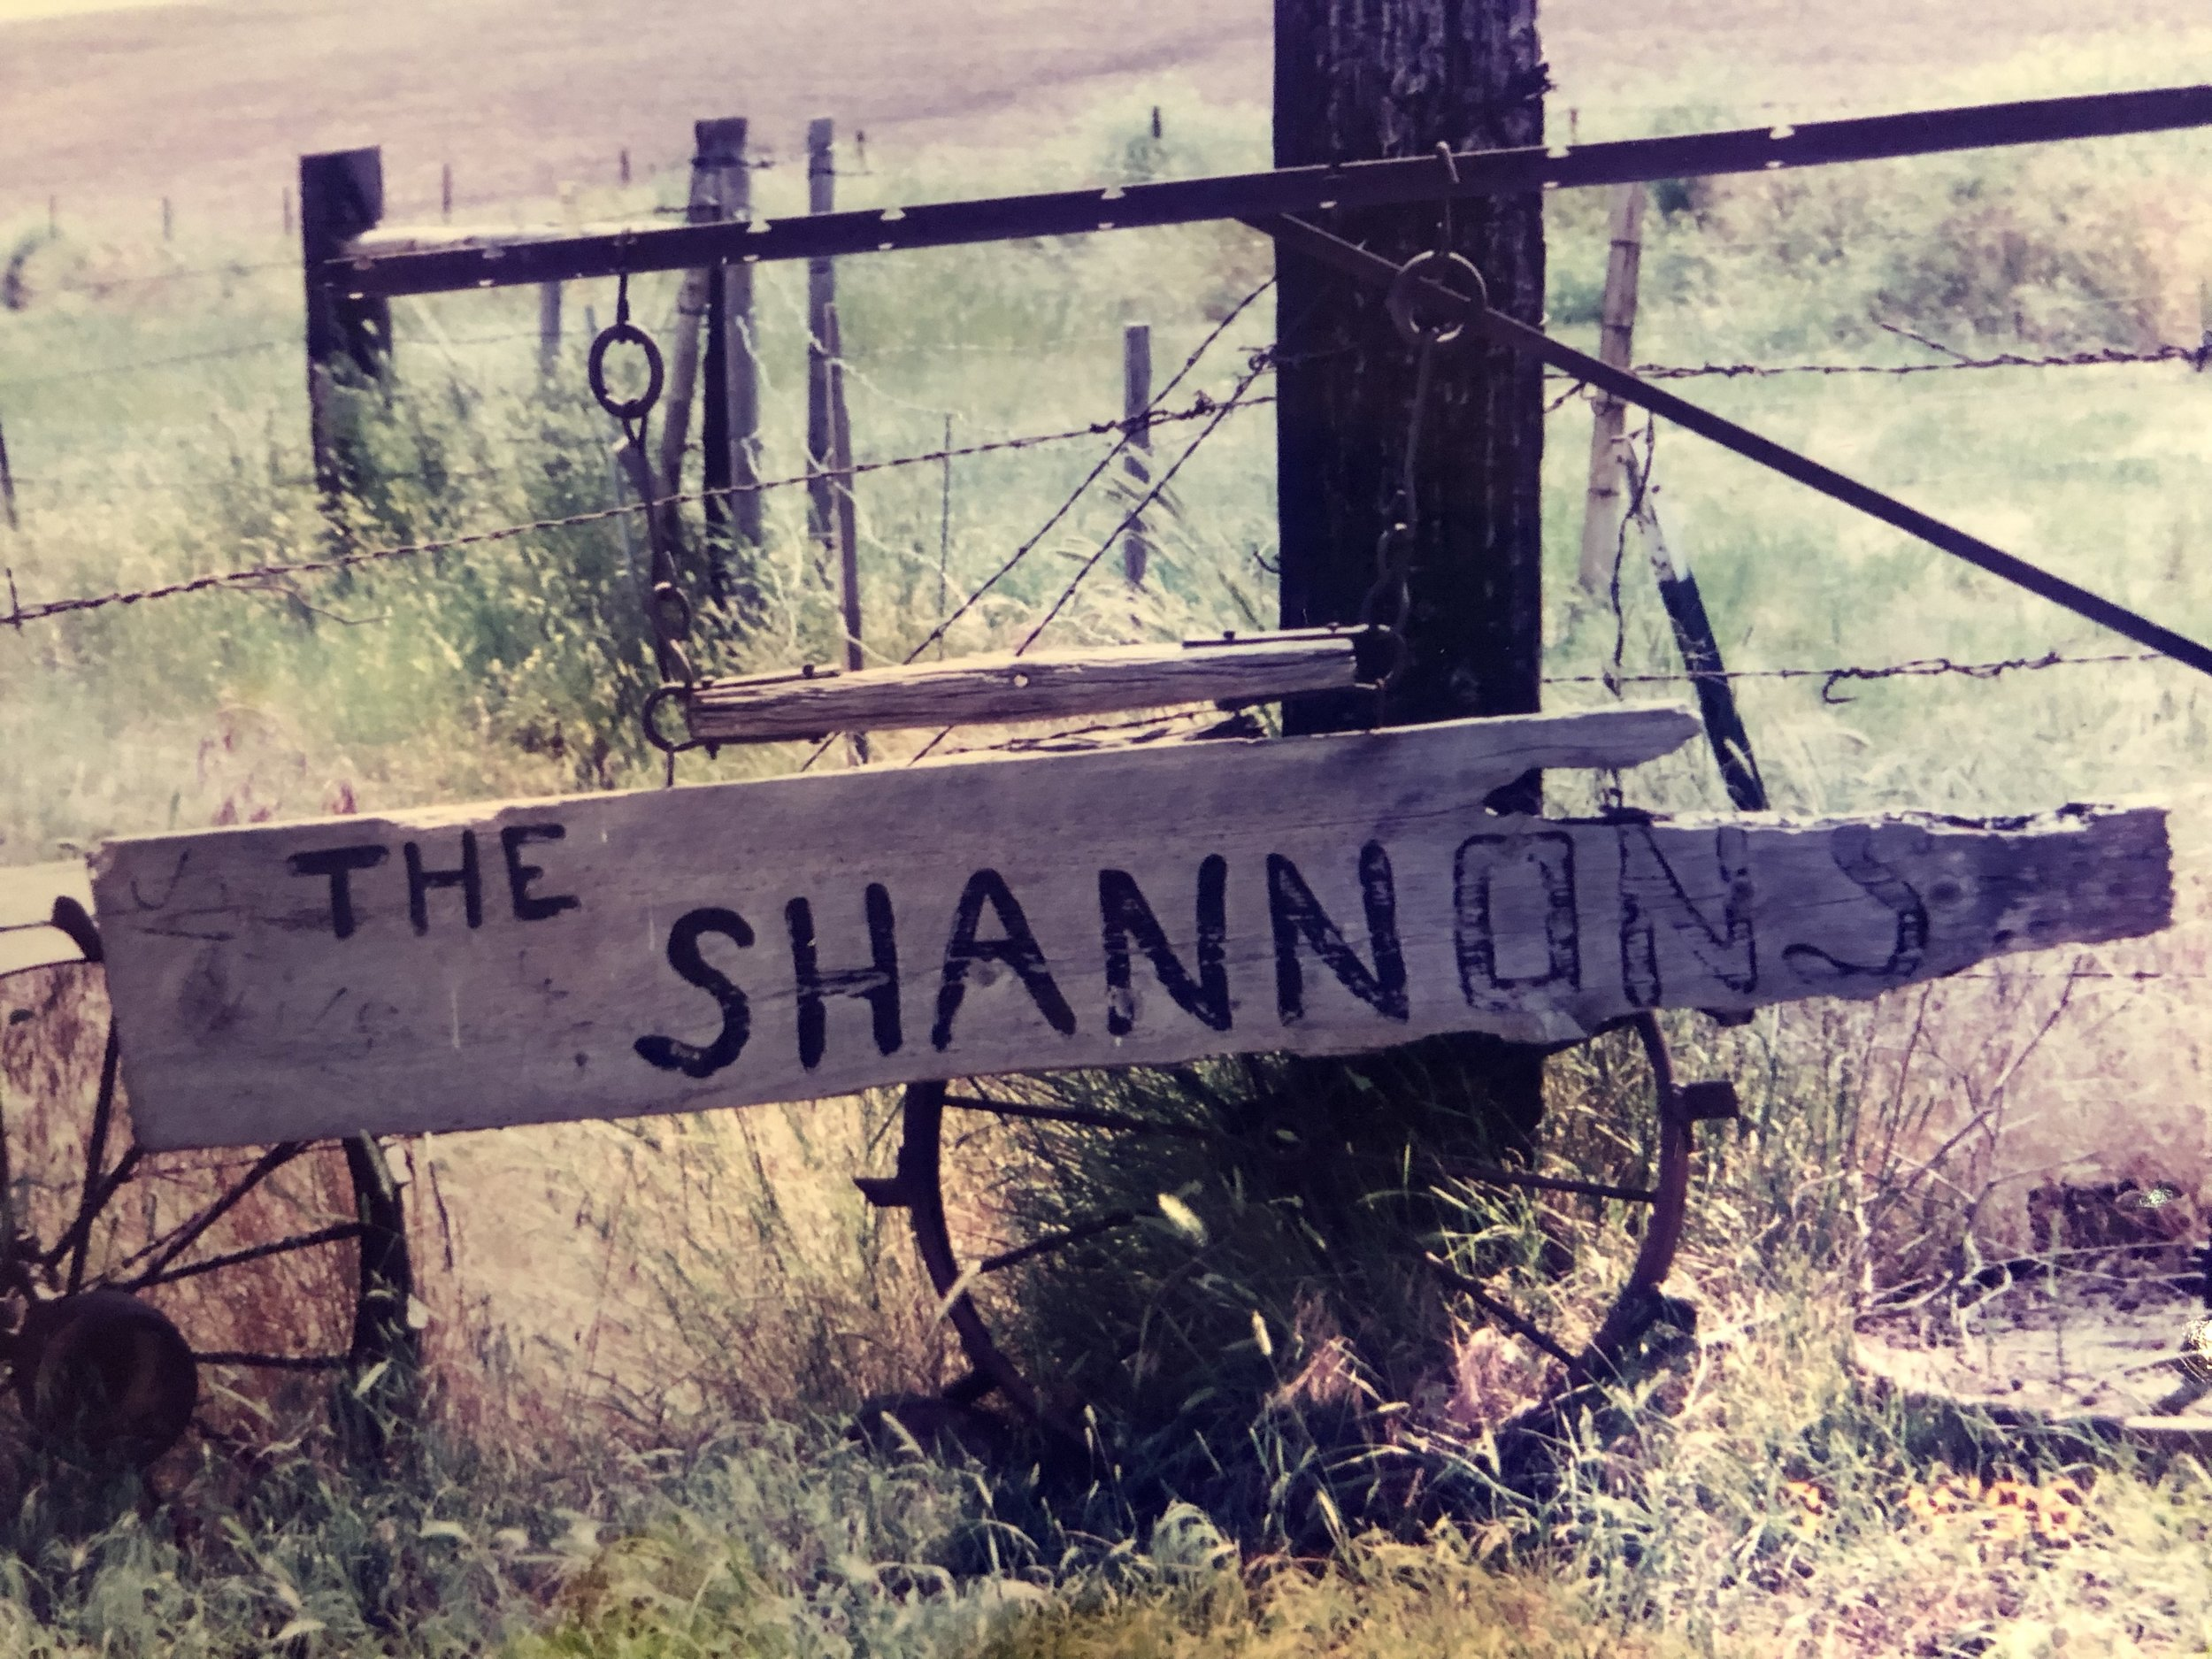 At the Shannon ranch